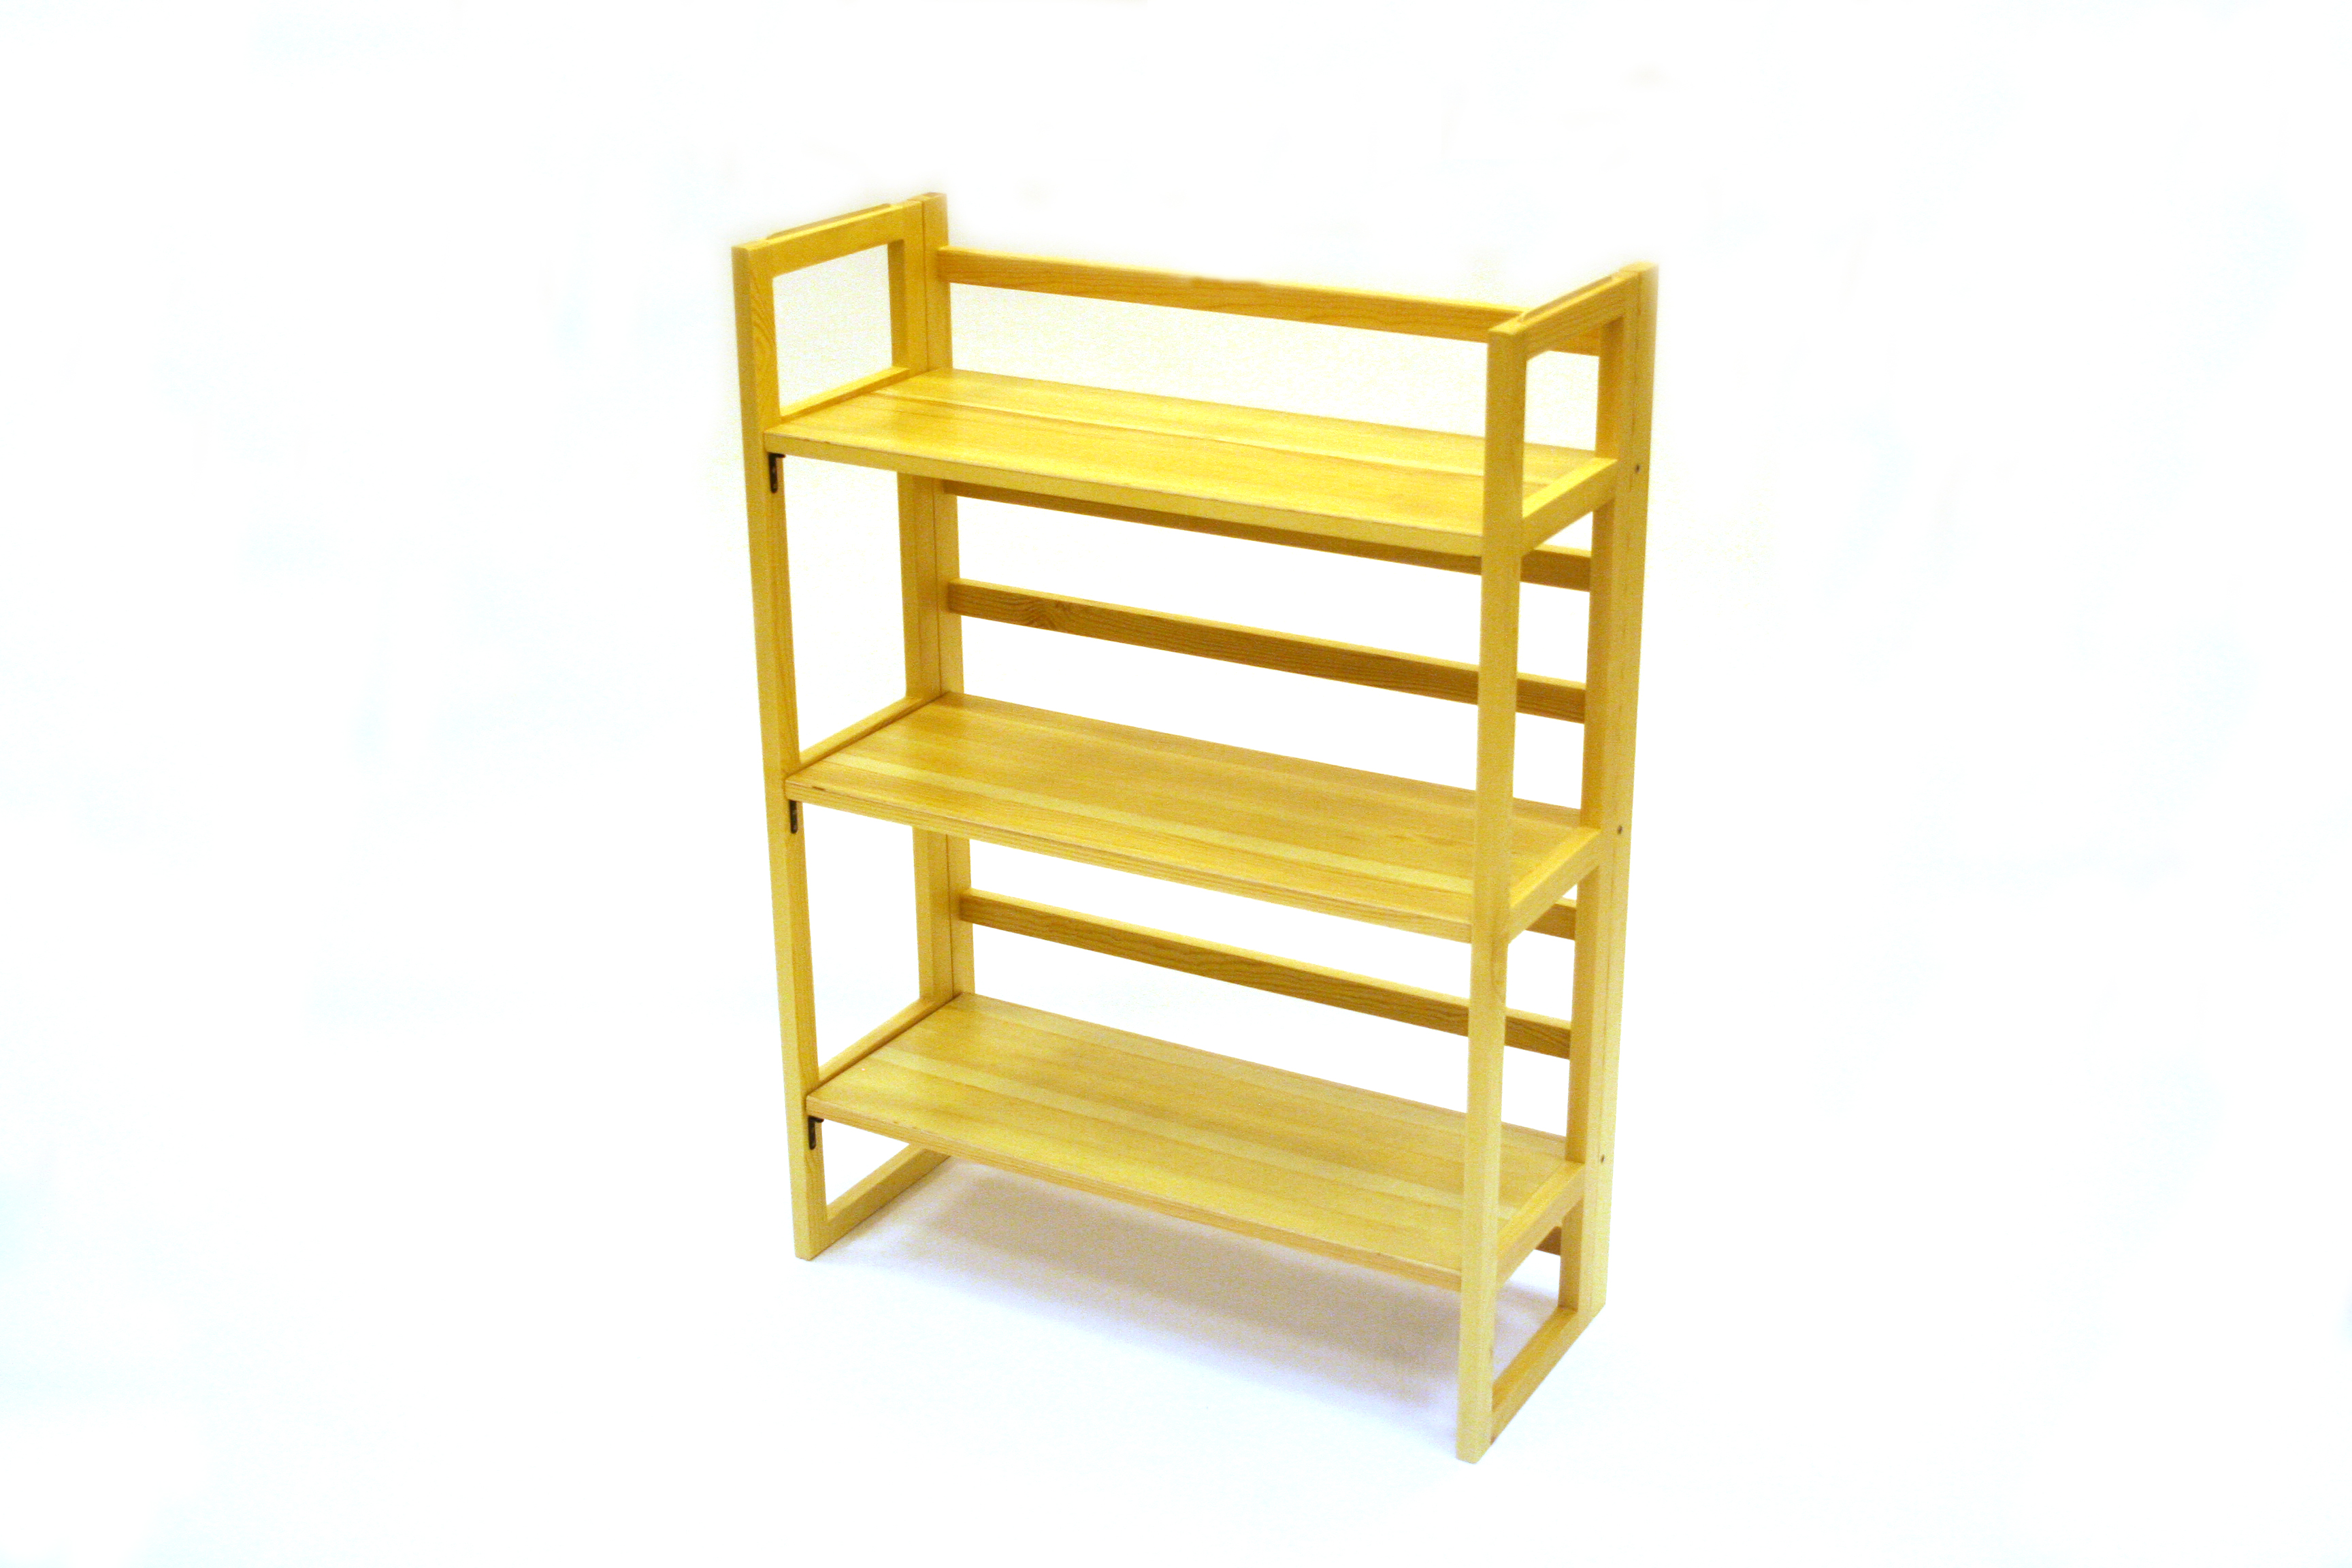 Stacking Wooden Bookshelves - BE Furniture Sales